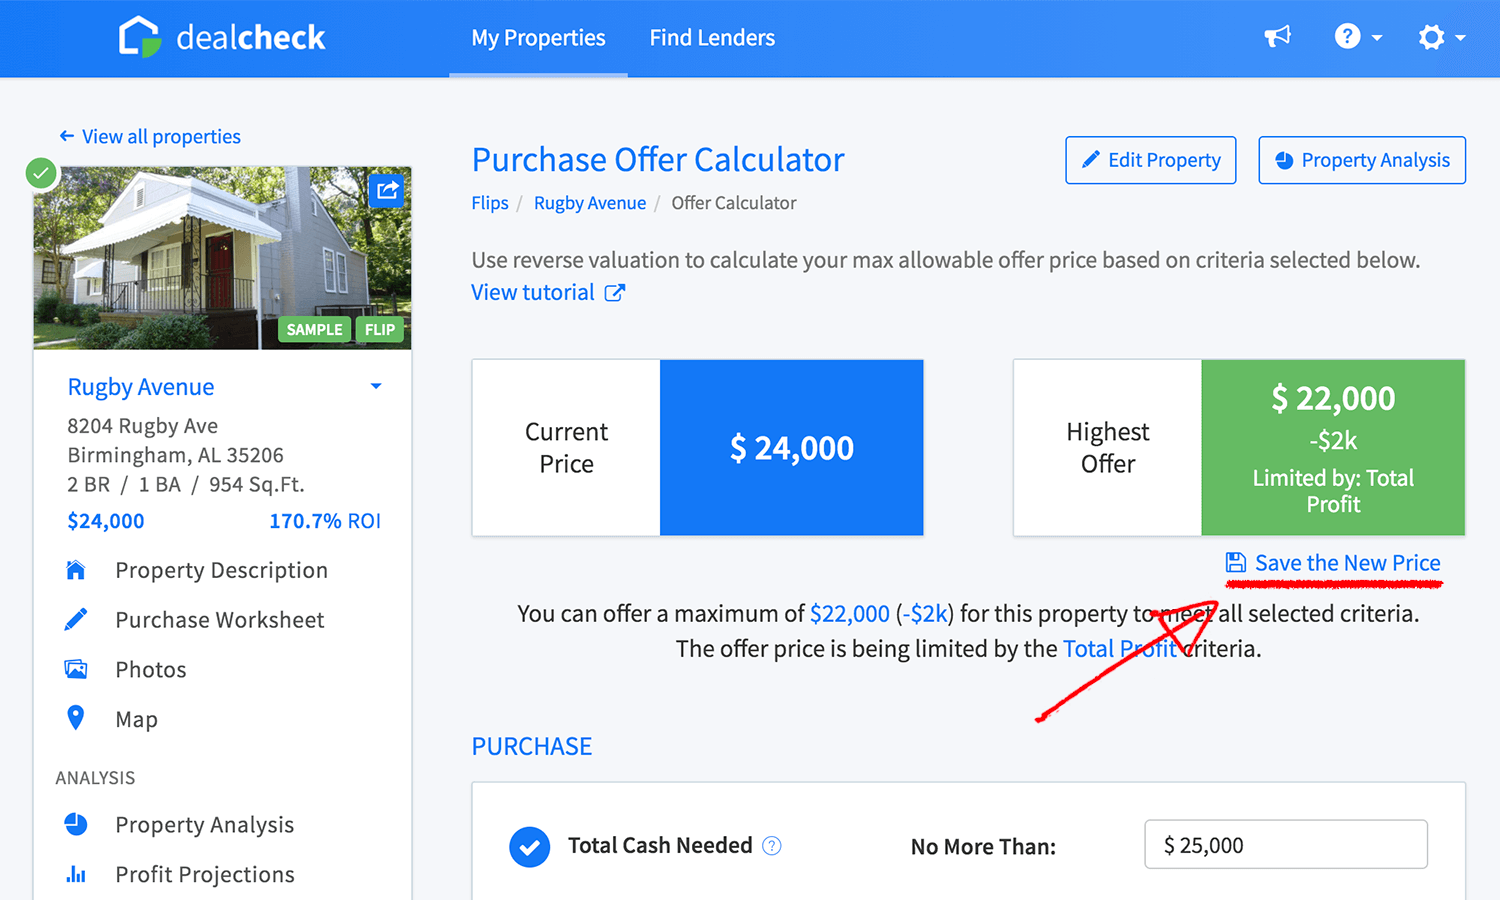 Purchase offer calculator save the new price feature